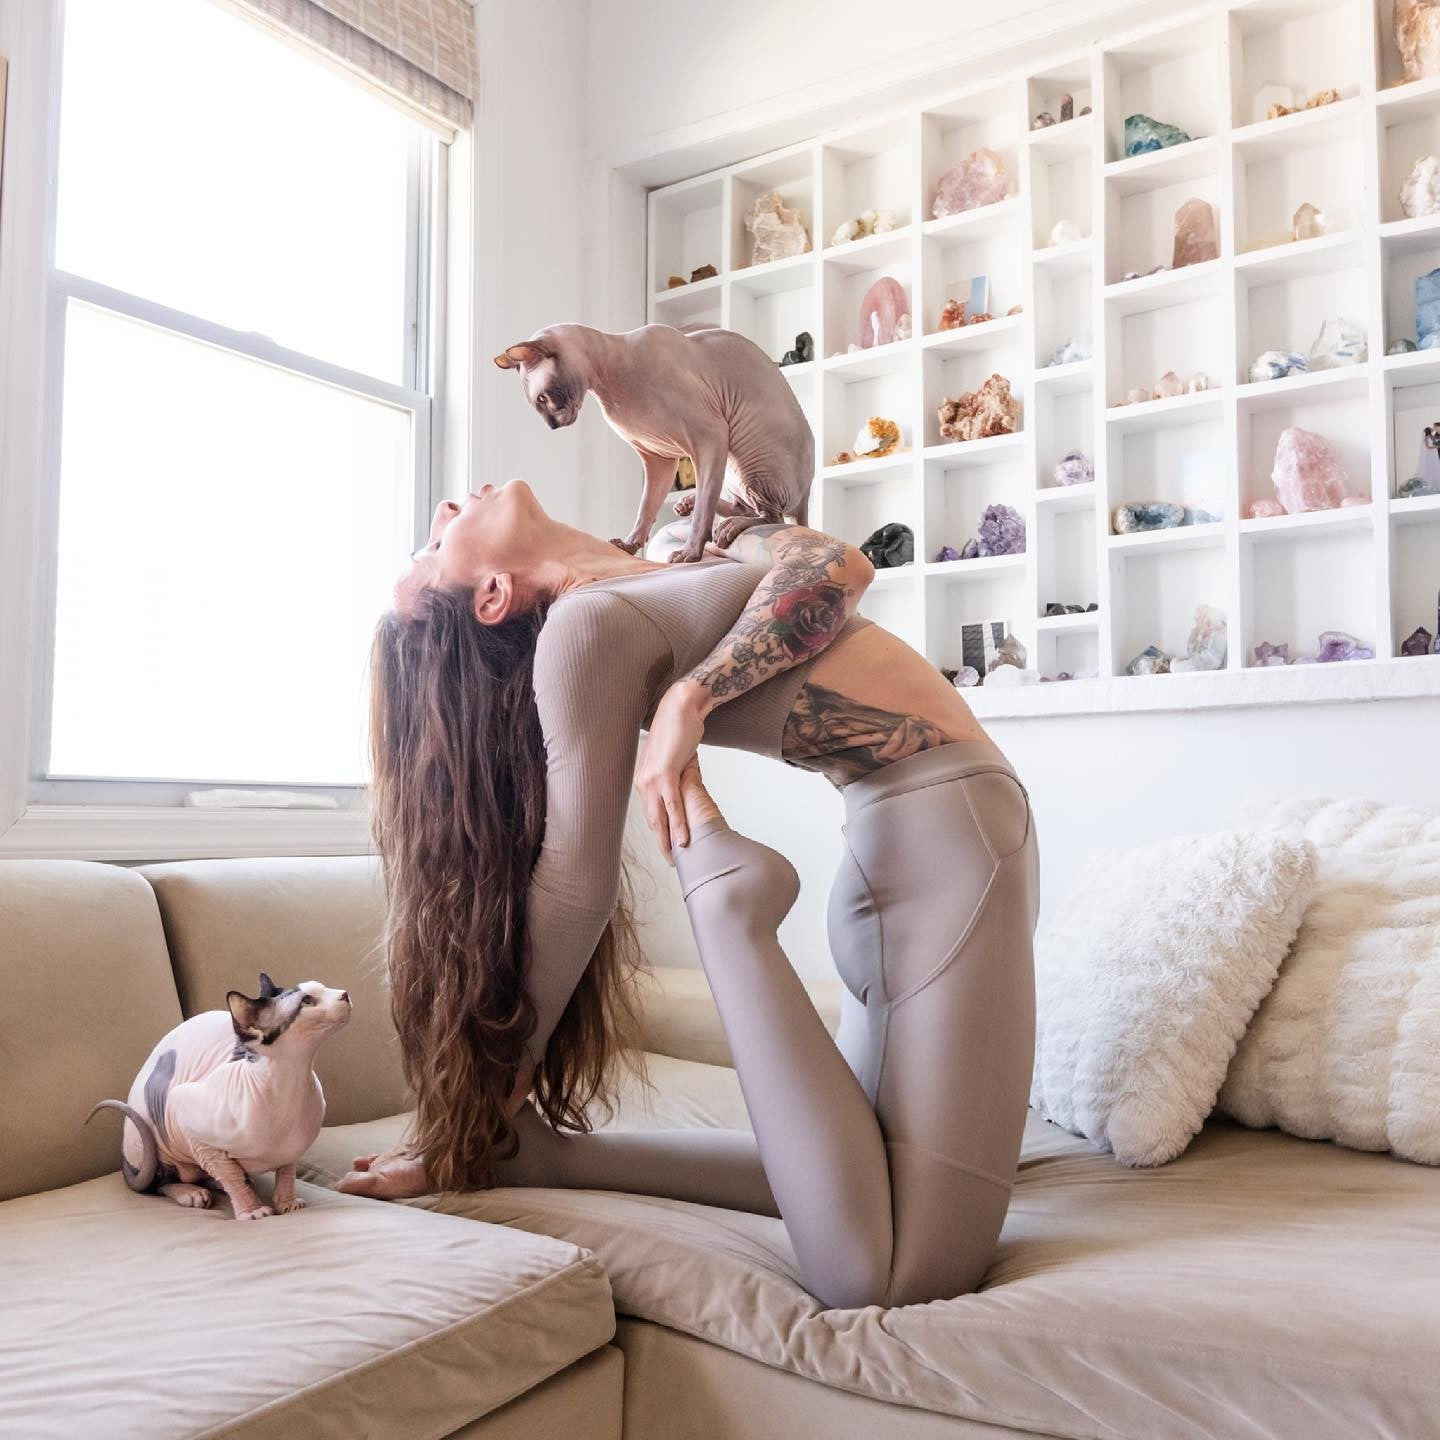 @eleonorazampatti wearing light purple leggings and matching sports bra while stretching with her two cats in her living room equipped with a crystal collection wall.